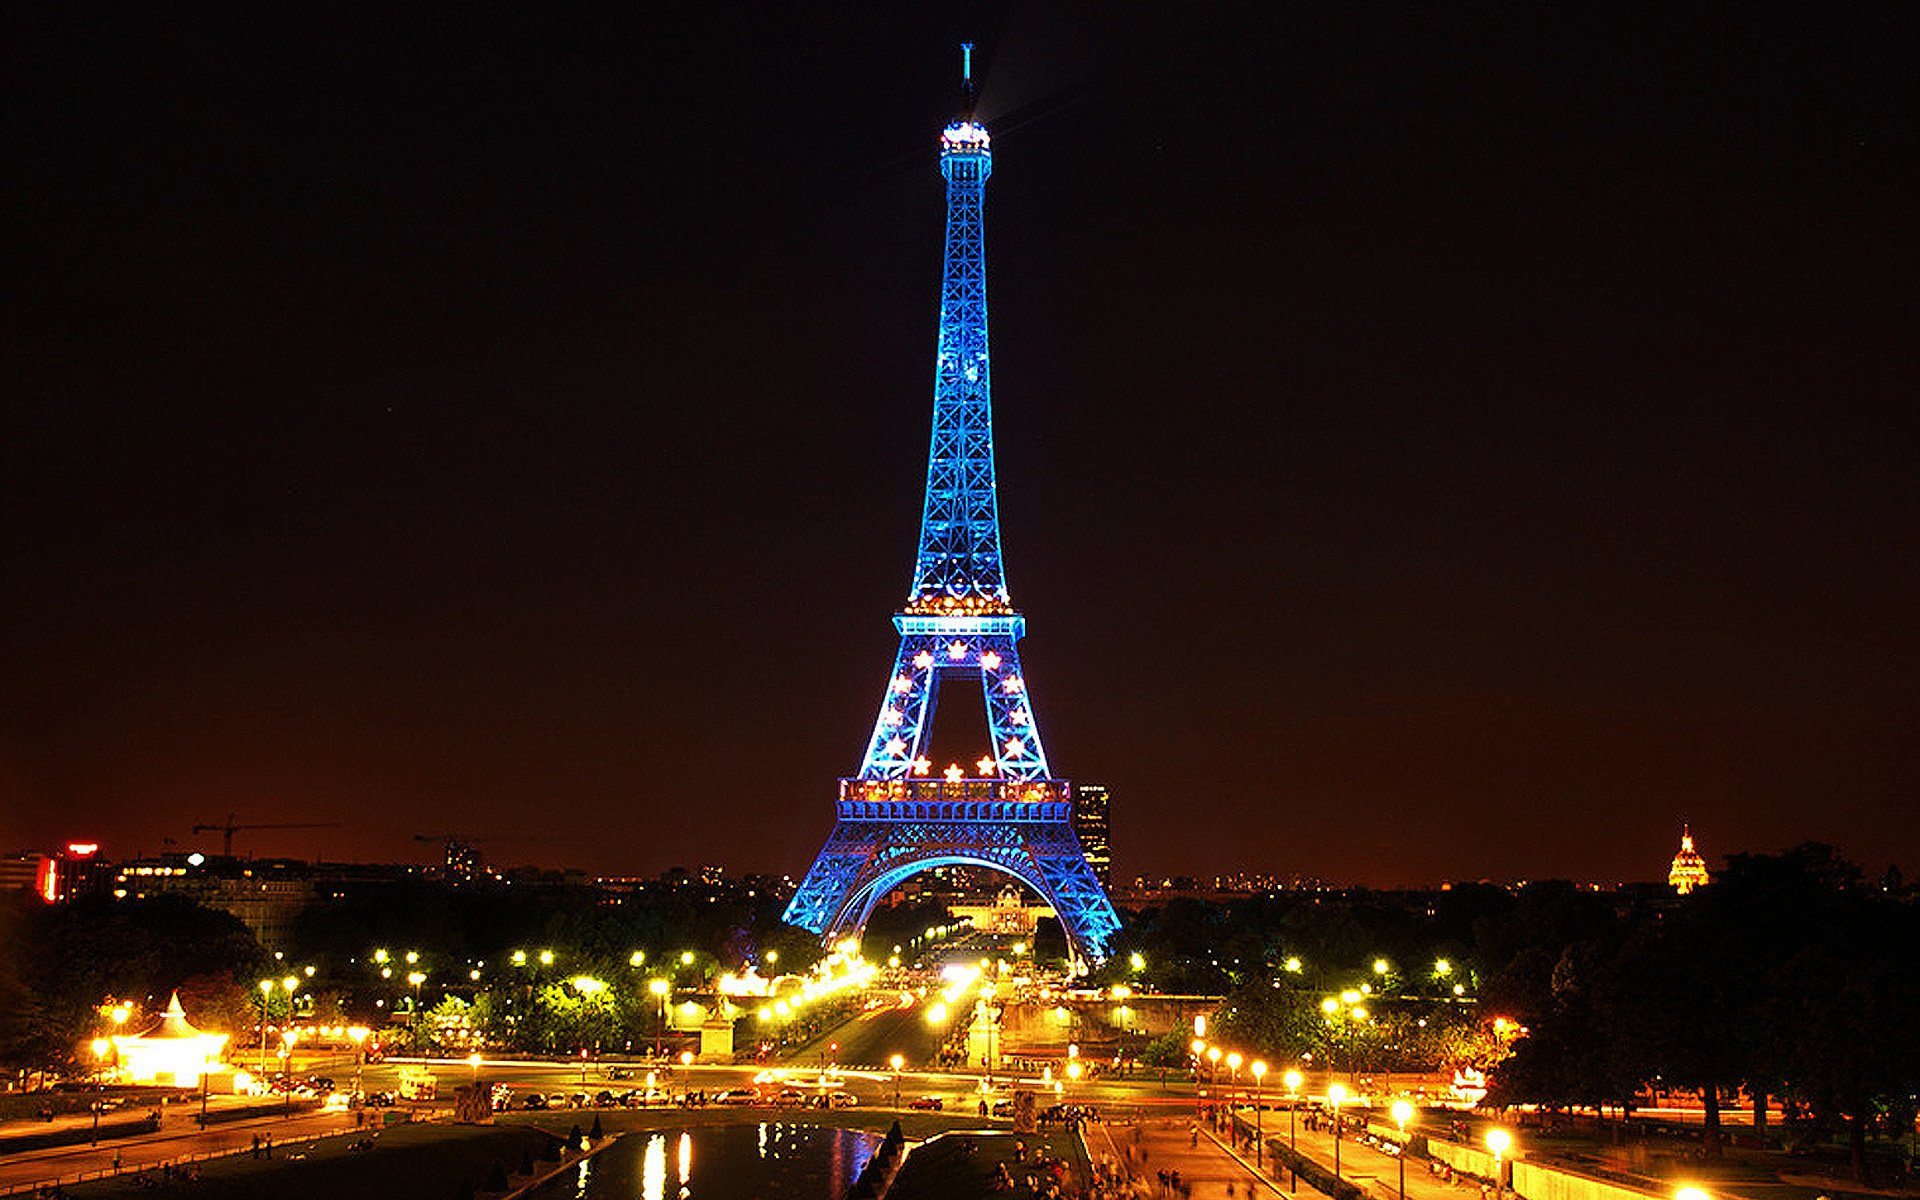 Eiffel tower lit up at night fond